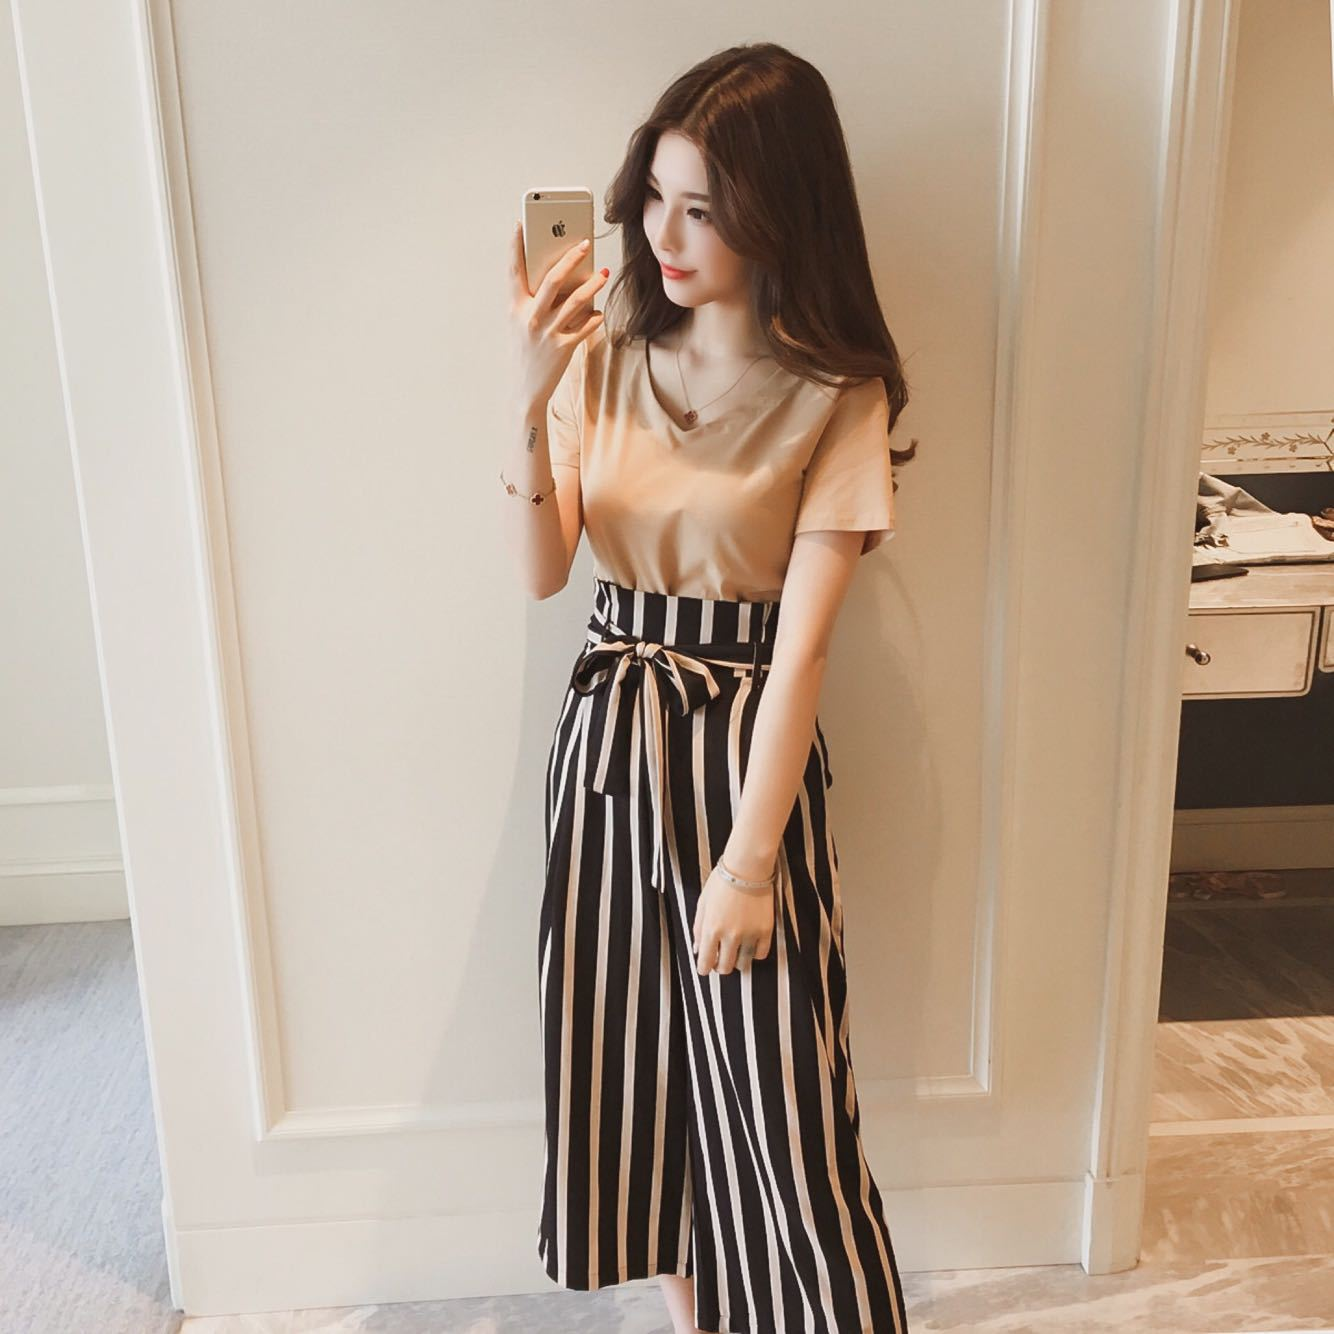 2019 Summer New Style Korean-style V-neck Short Sleeve T-shirt + Stripes Capri Loose Pants WOMEN'S Suit Casual Two-Piece Set Fas